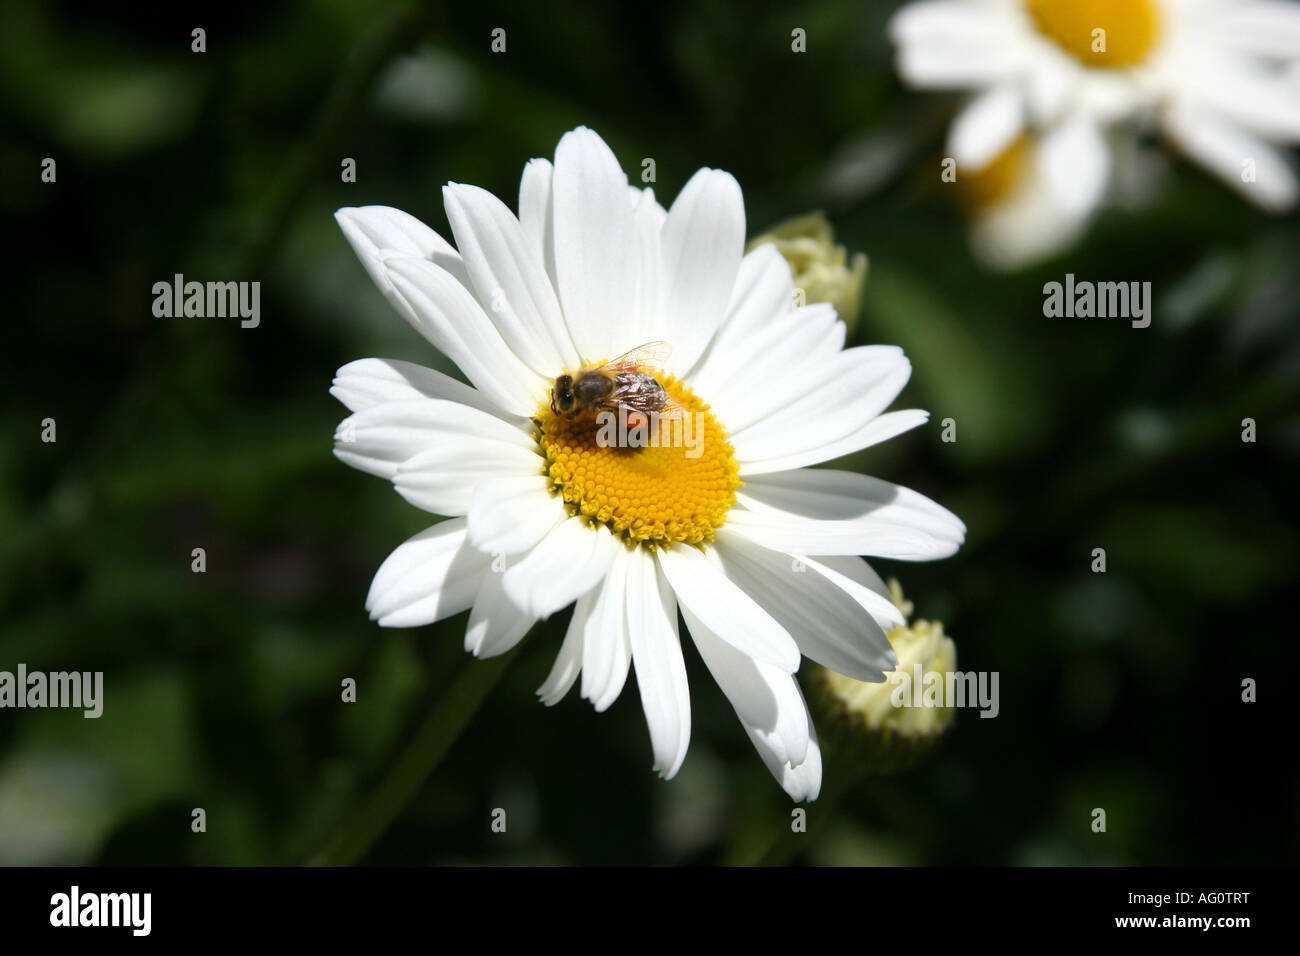 Bellis Perennis Or Daisy Flowers Seen At Boquete Flower Fair At